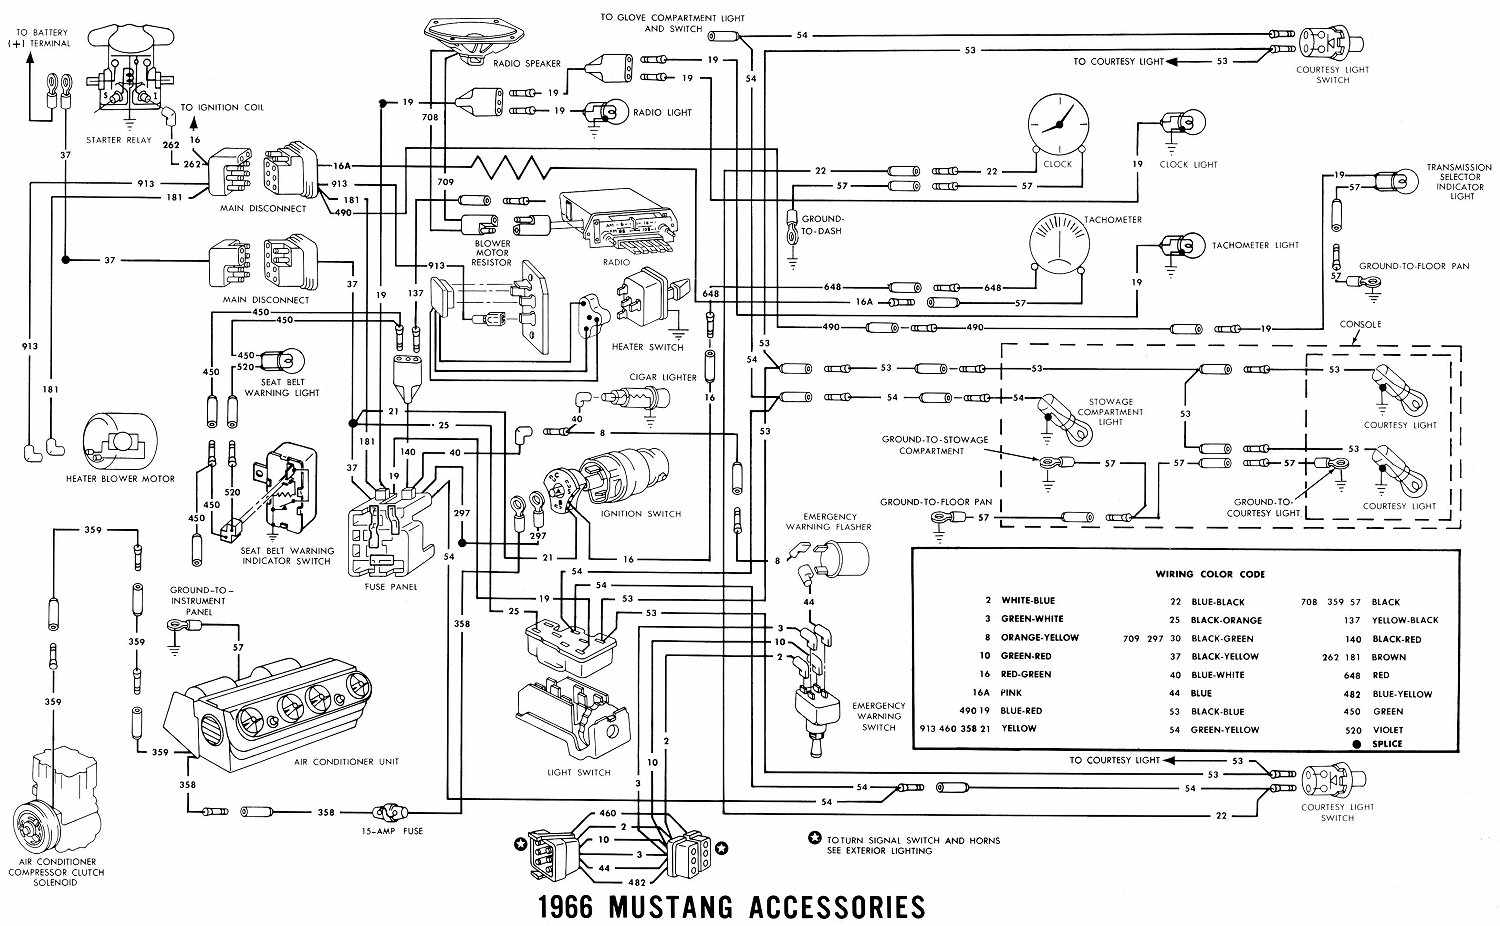 1966 ford mustang accessories electrical wiring diagrams | schematic wiring diagrams solutions 1966 mustang windshield wiper wiring diagrams 1966 mustang flasher diagram wiring schematic